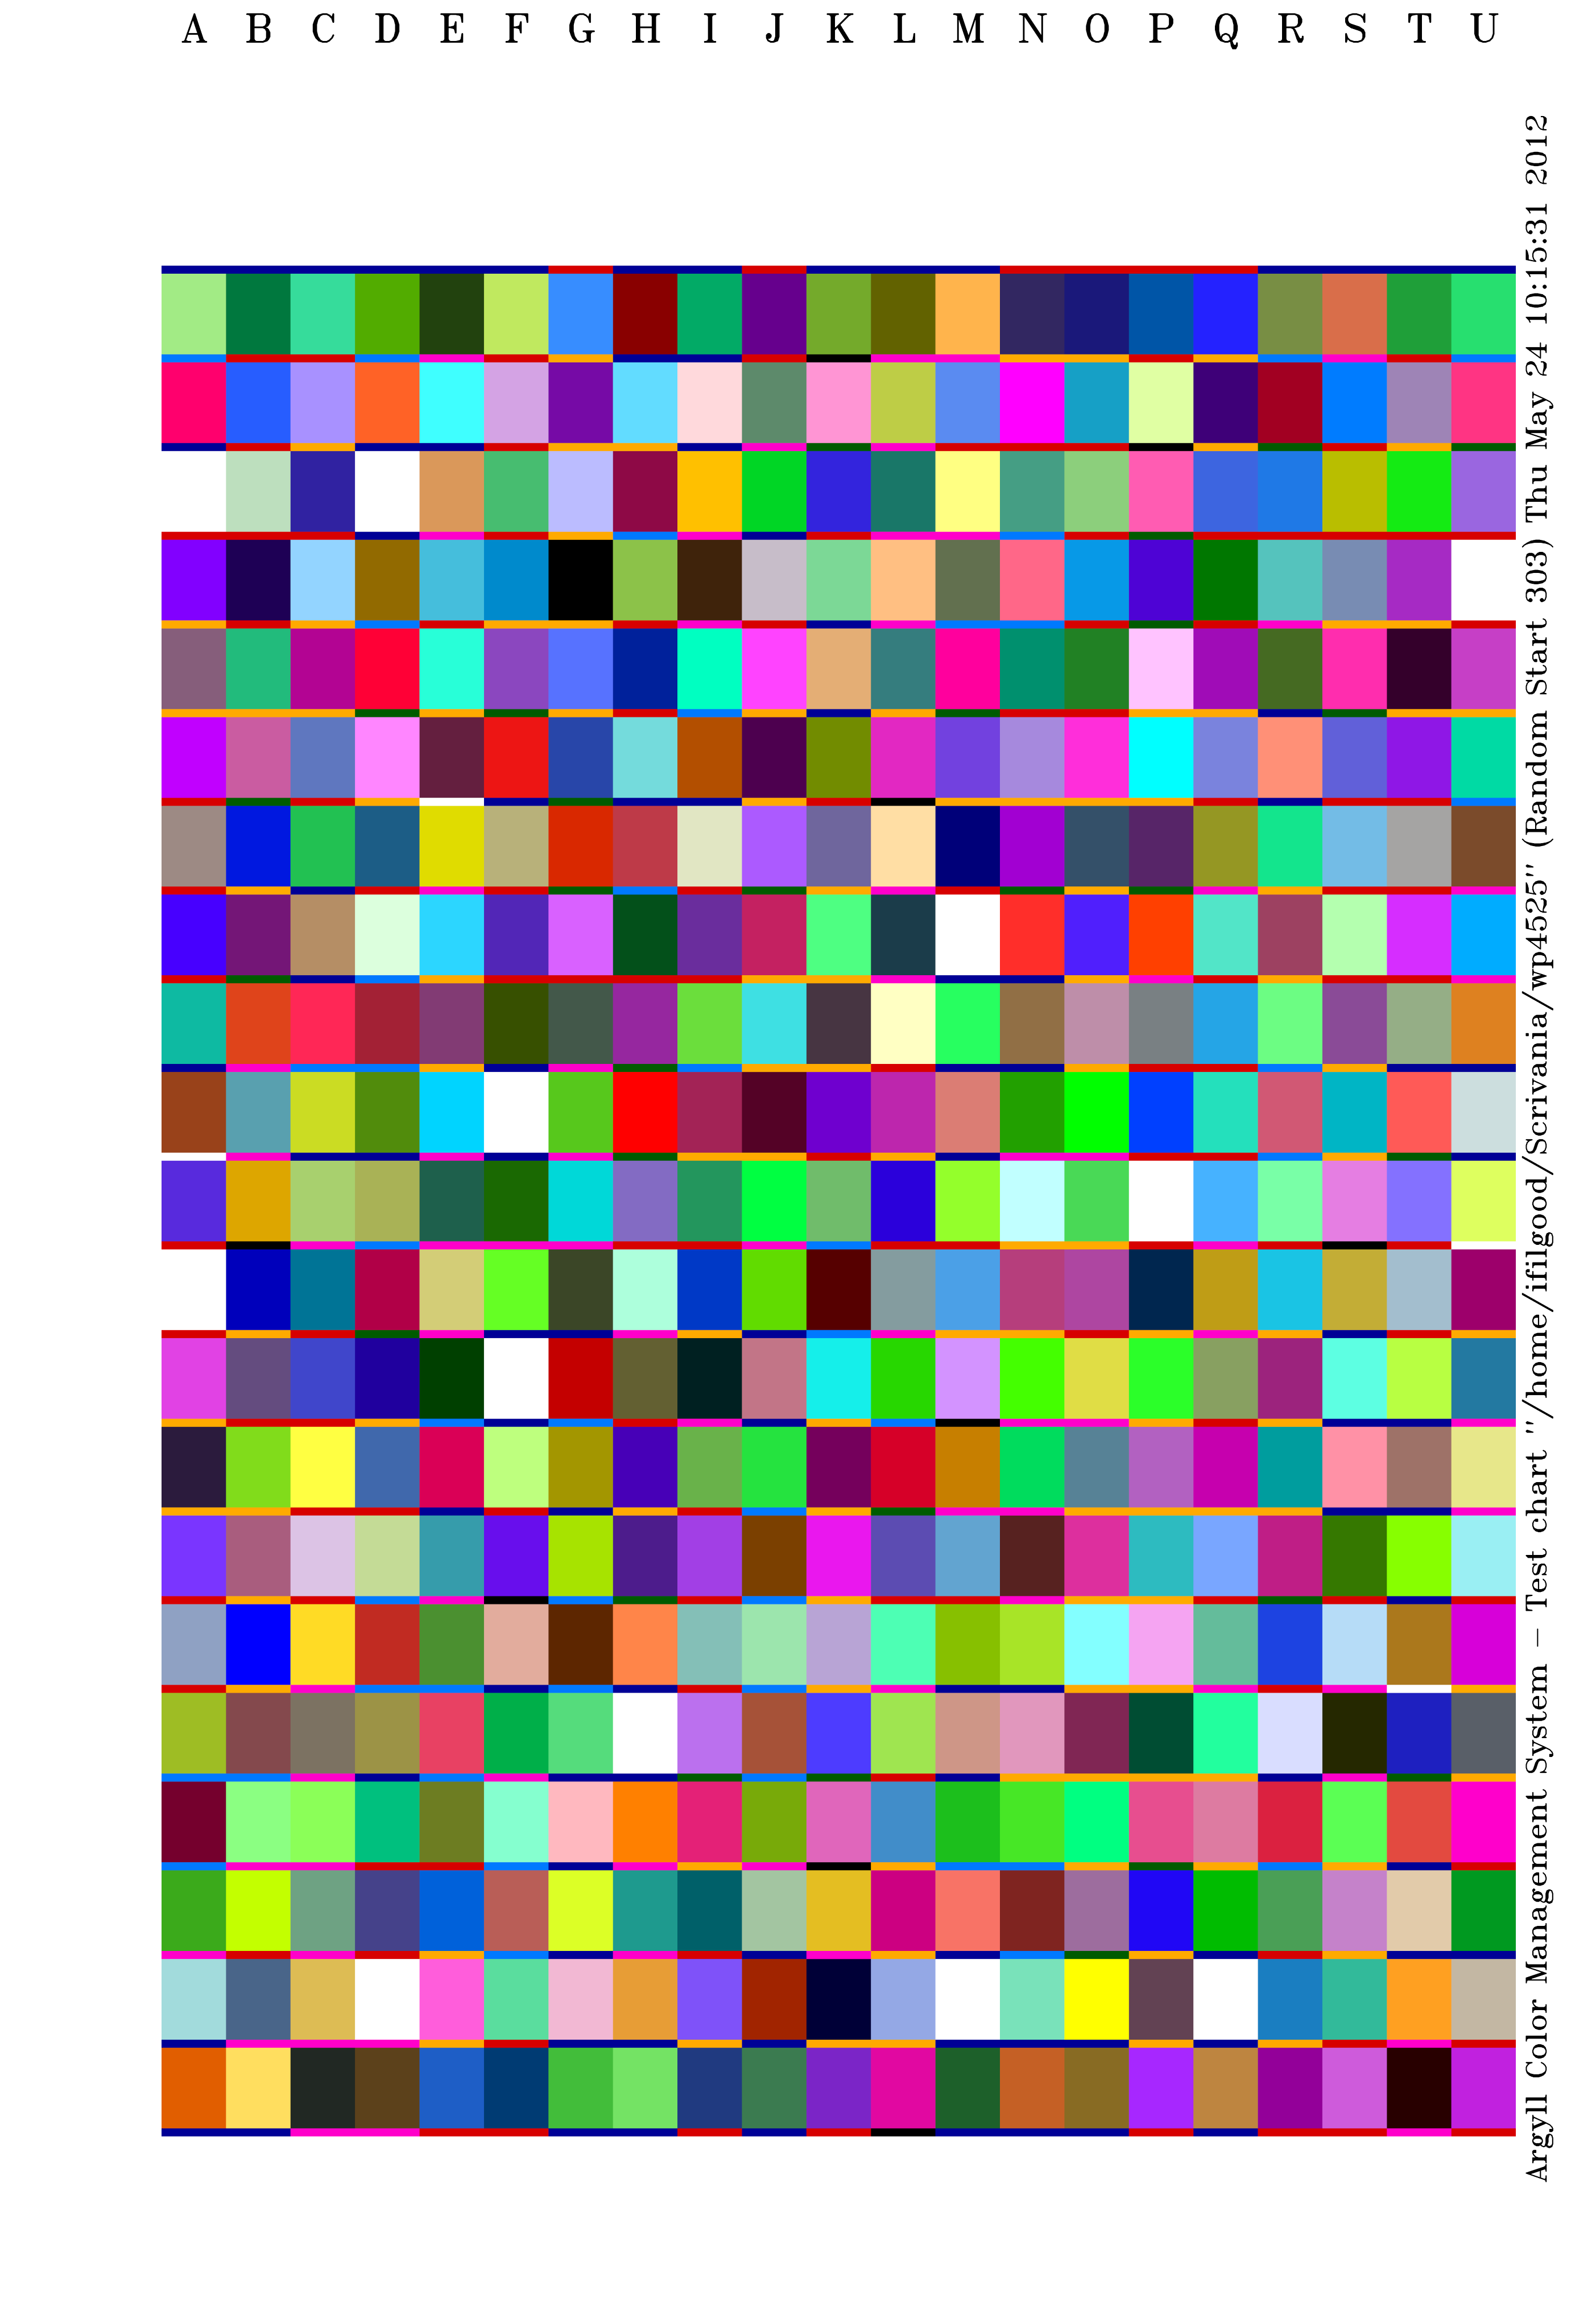 A4R [297.0 x 210.0 mm] A3 [297.0 x 420.0 mm] (default) A2 [420.0 x 594.0 mm] Letter [215.9 x 279.4 mm] LetterR [279.4 x 215.9 mm] Legal [215.9 x 355.6 mm] 4x6 [101.6 x 152.4 mm] 11x17 [279.4 x 431.